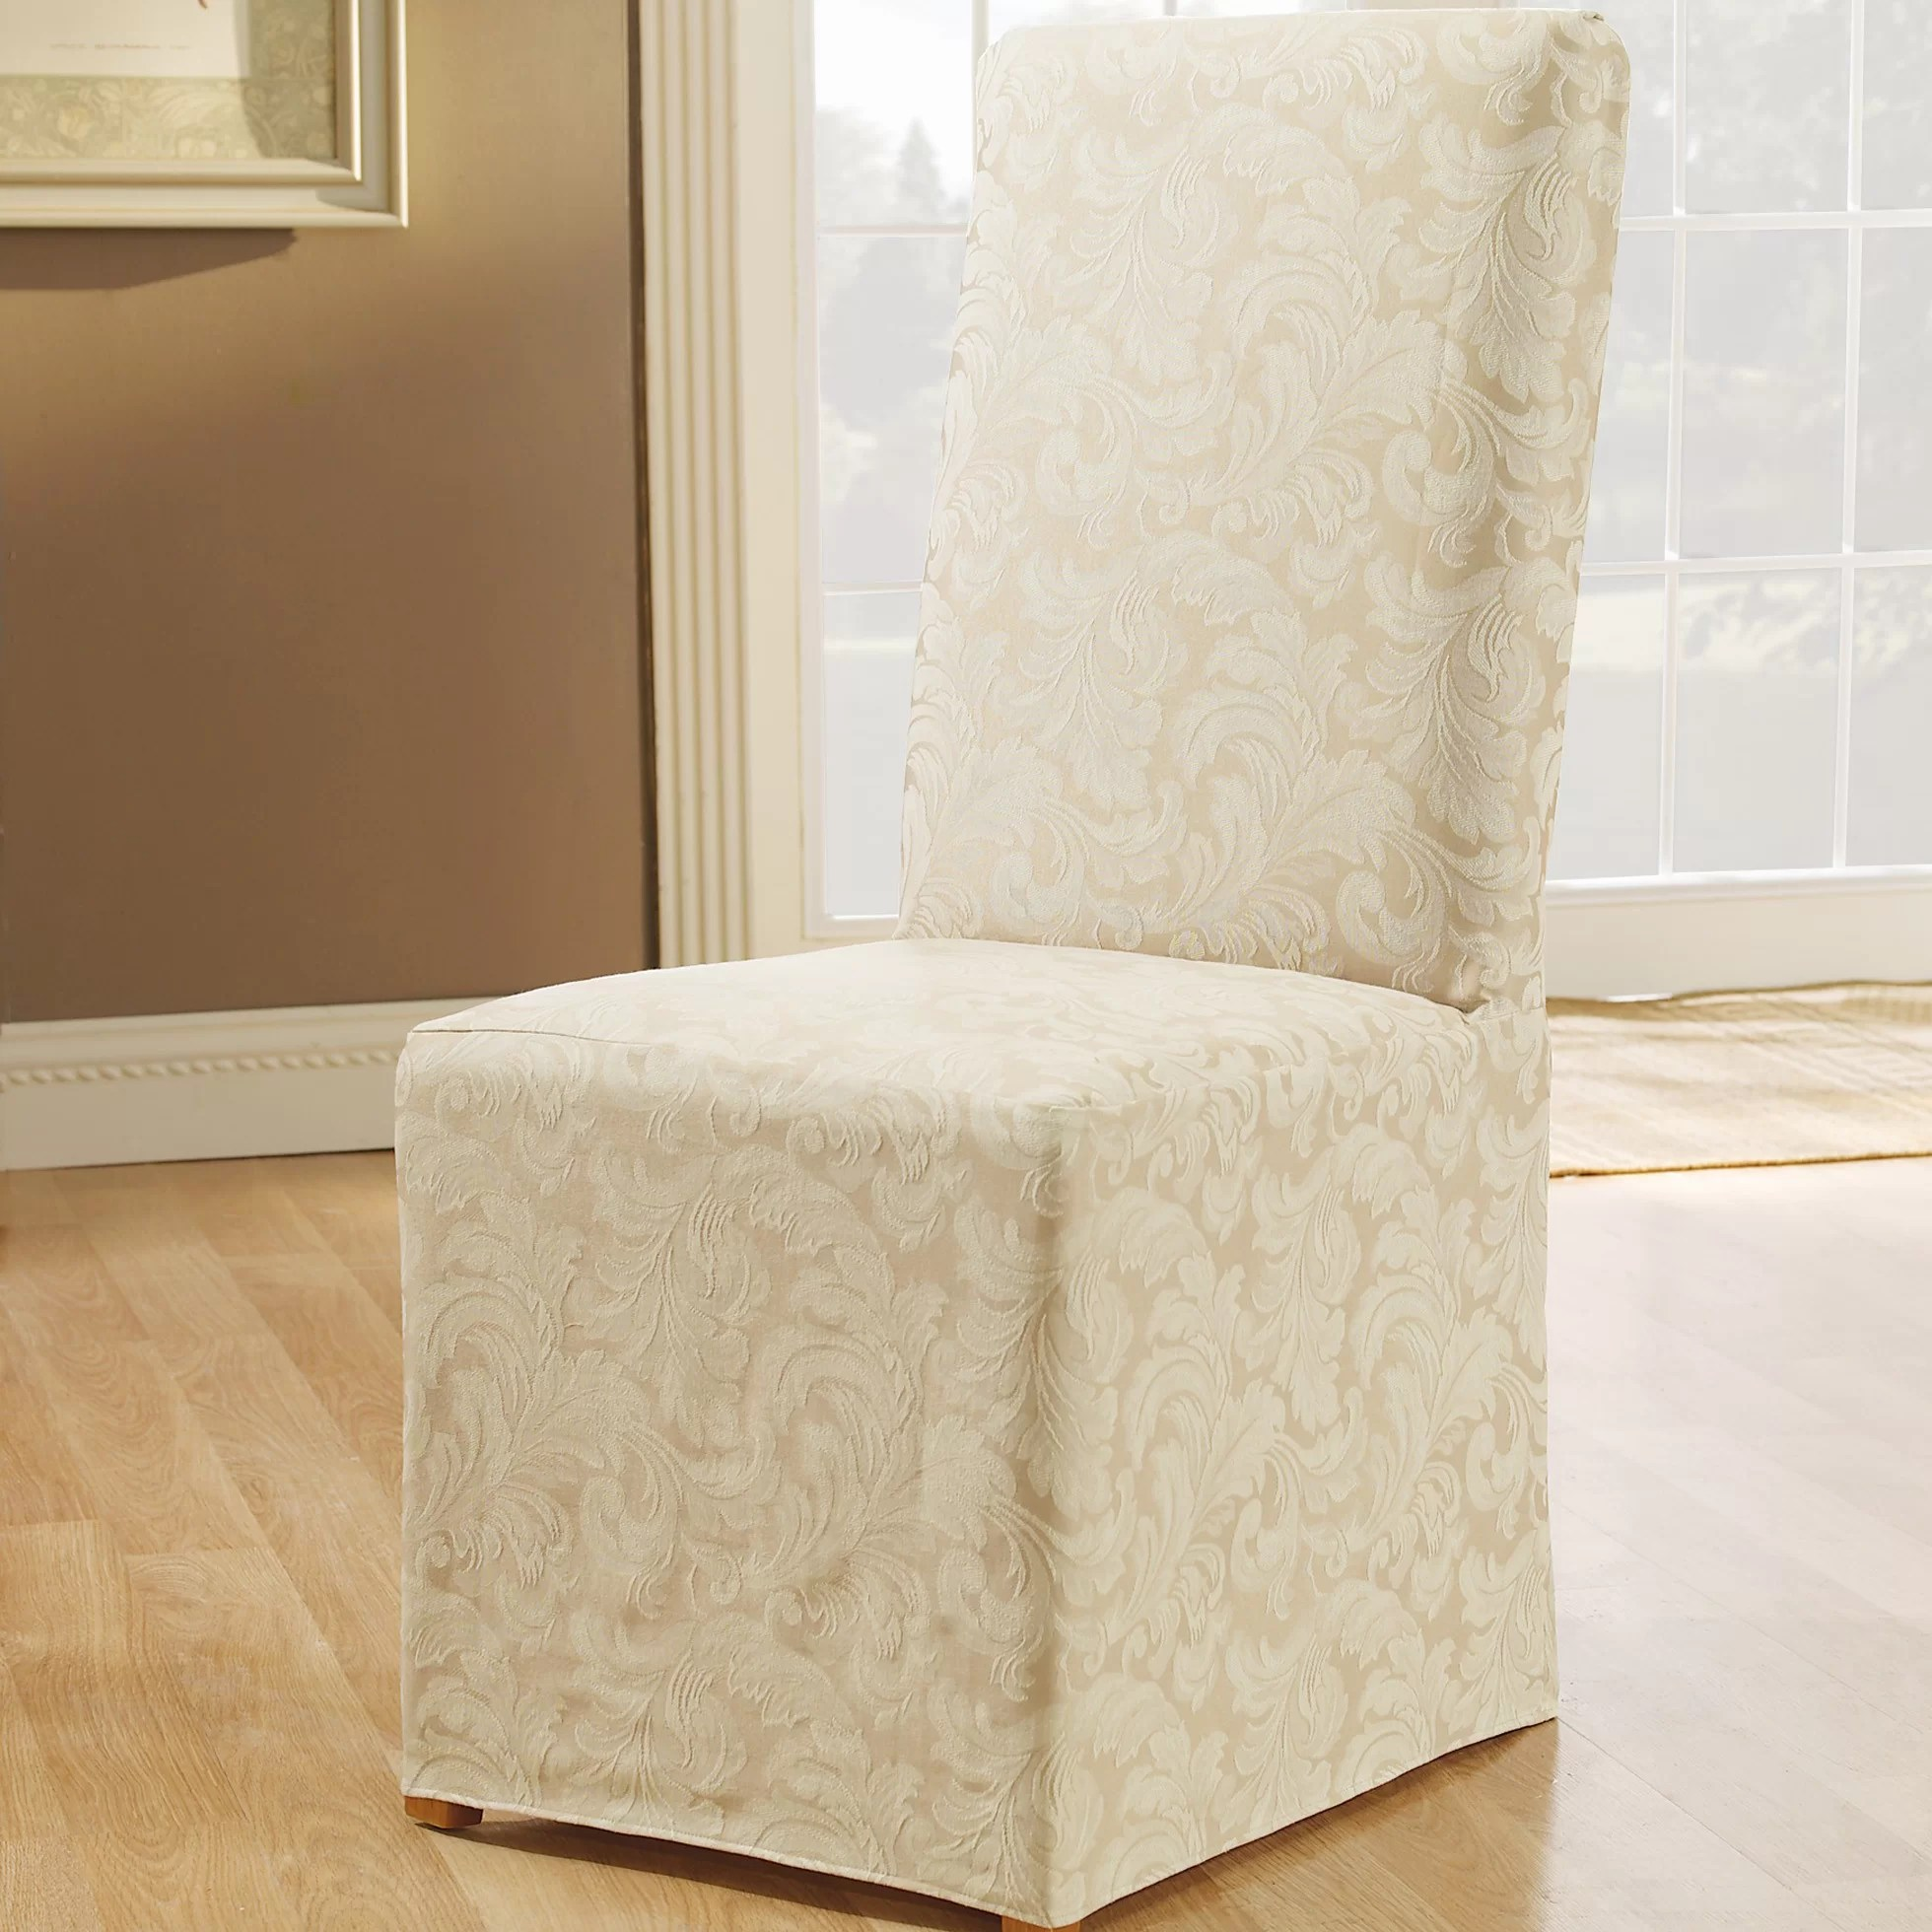 Slip Cover For Chair Scroll Classic Box Cushion Dining Chair Slipcover